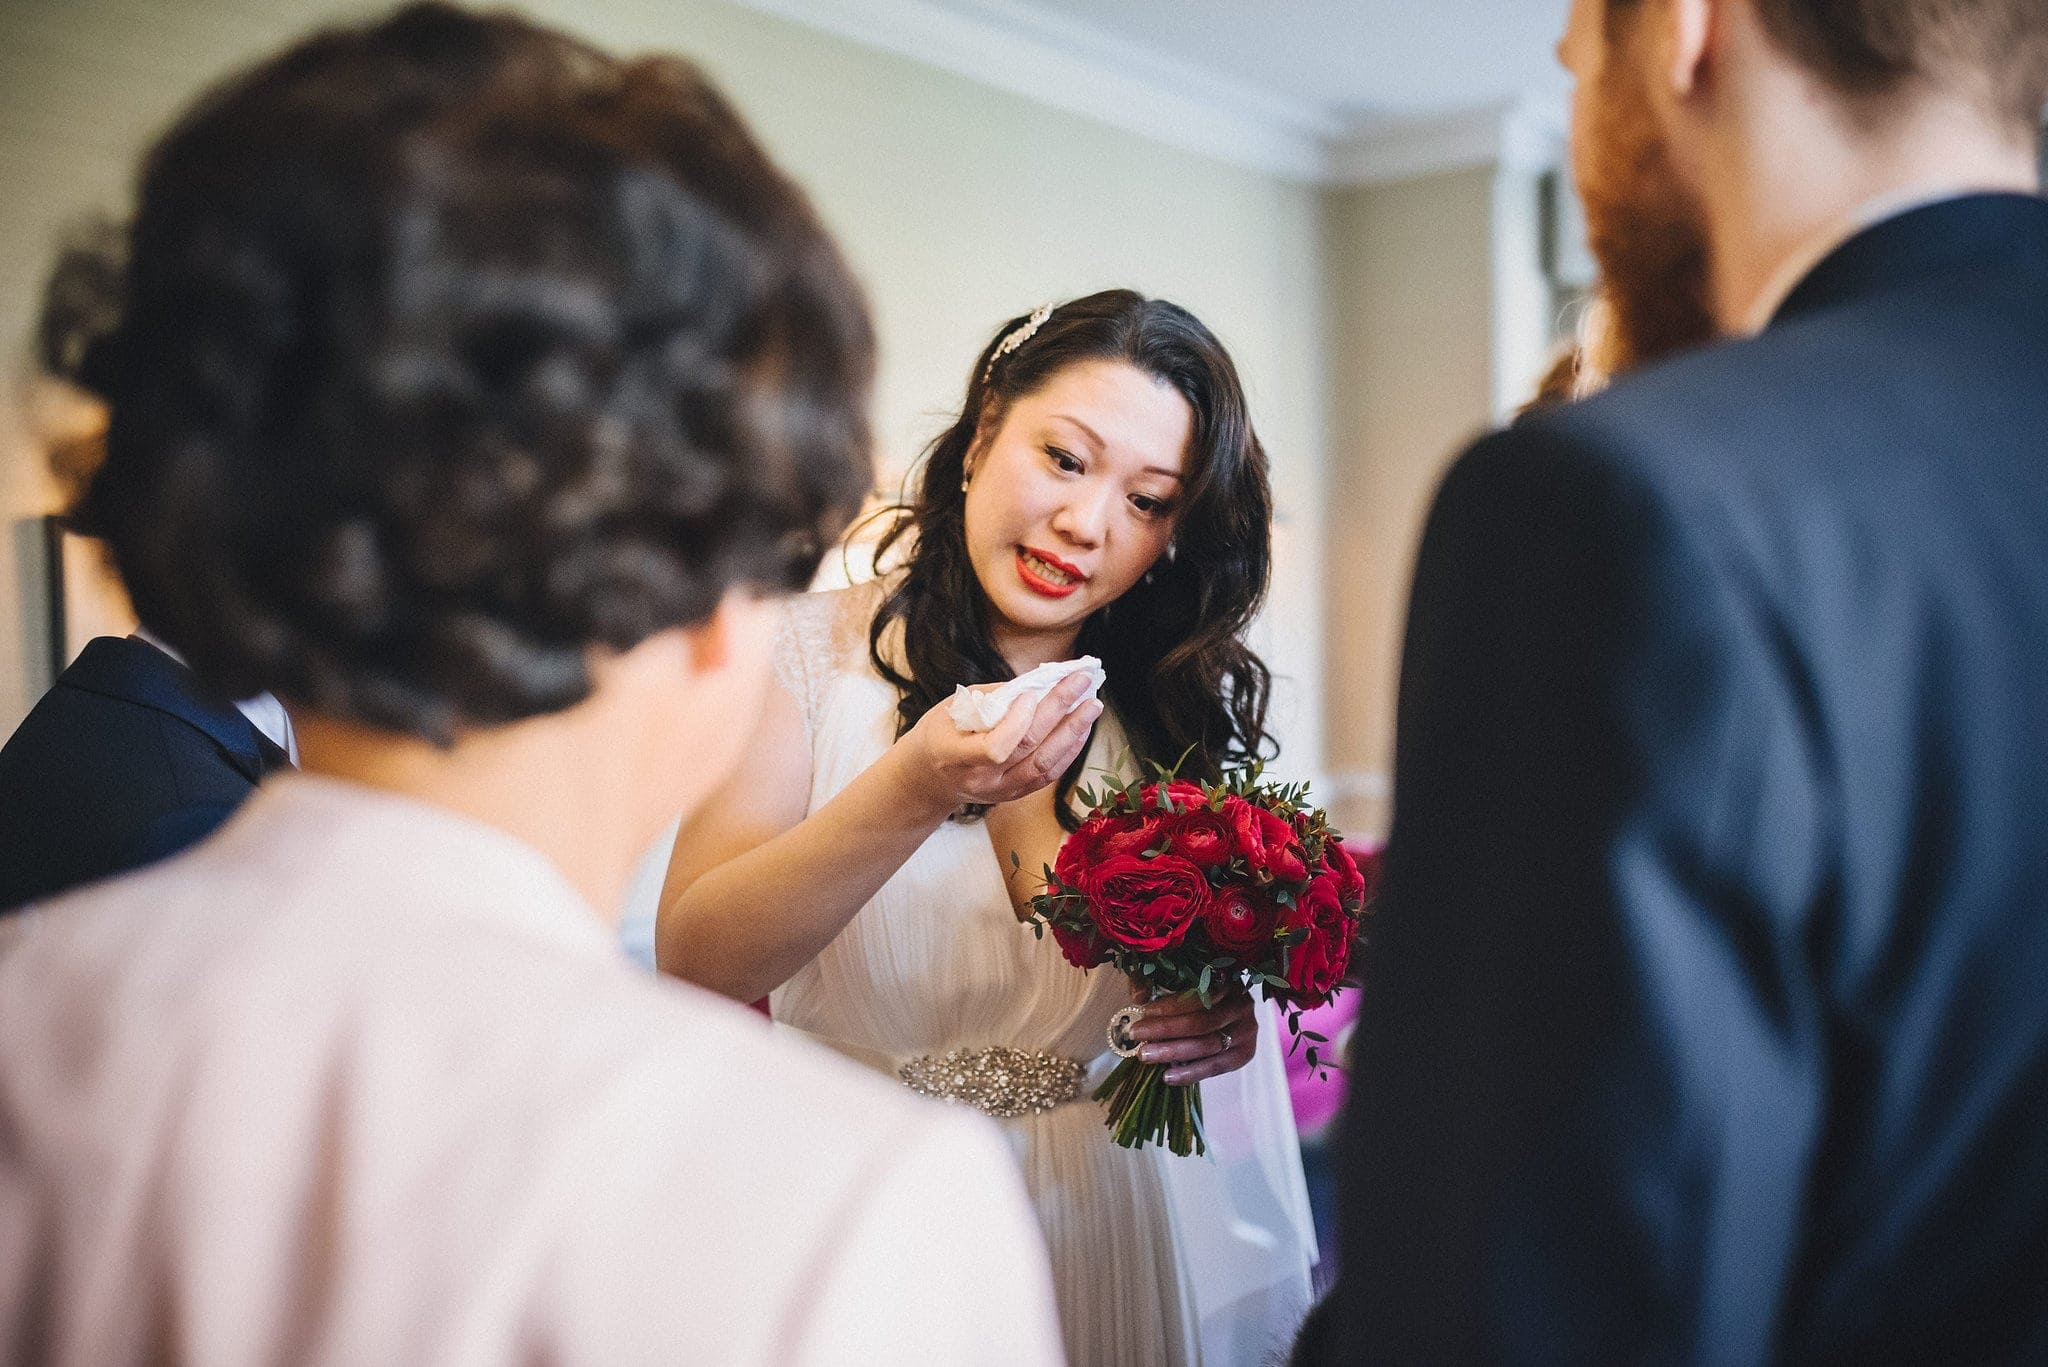 Bride gets emotional while holding red rose bouquet at her Fusion Morden Hall Wedding